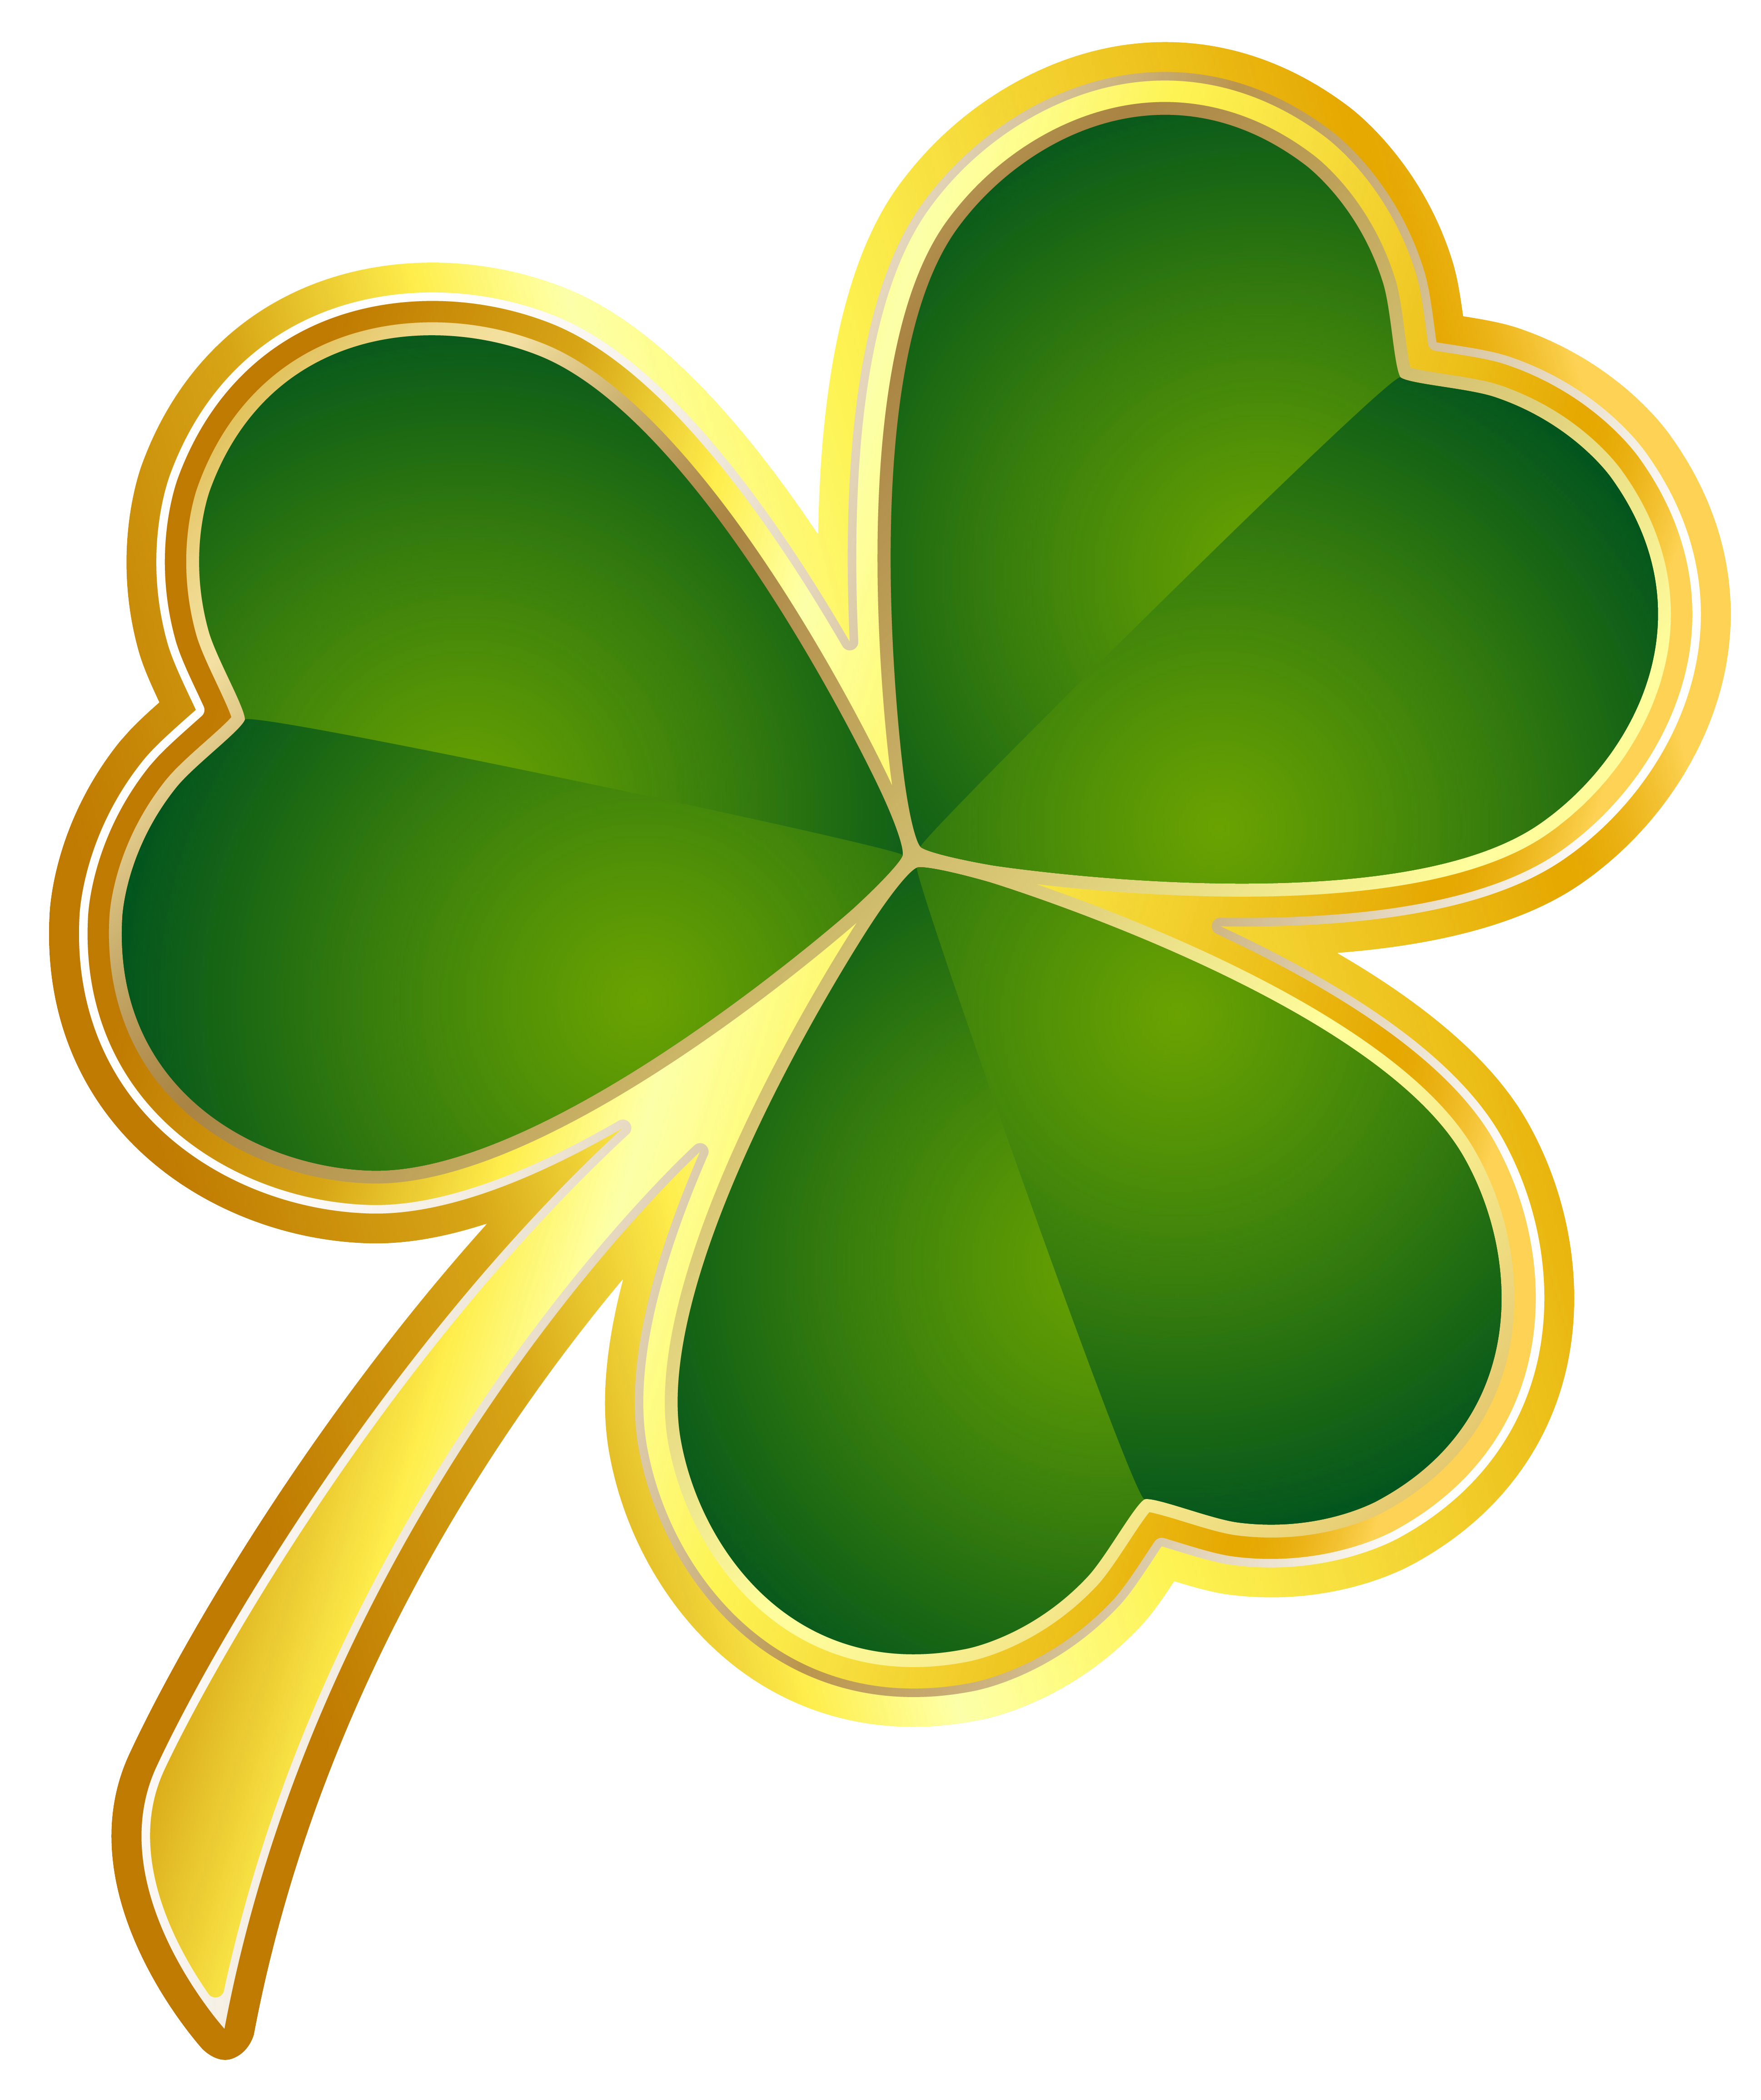 St patricks day shamrock clipart graphic freeuse download St Patricks Day Gold Shamrock PNG Clipart | Gallery ... graphic freeuse download